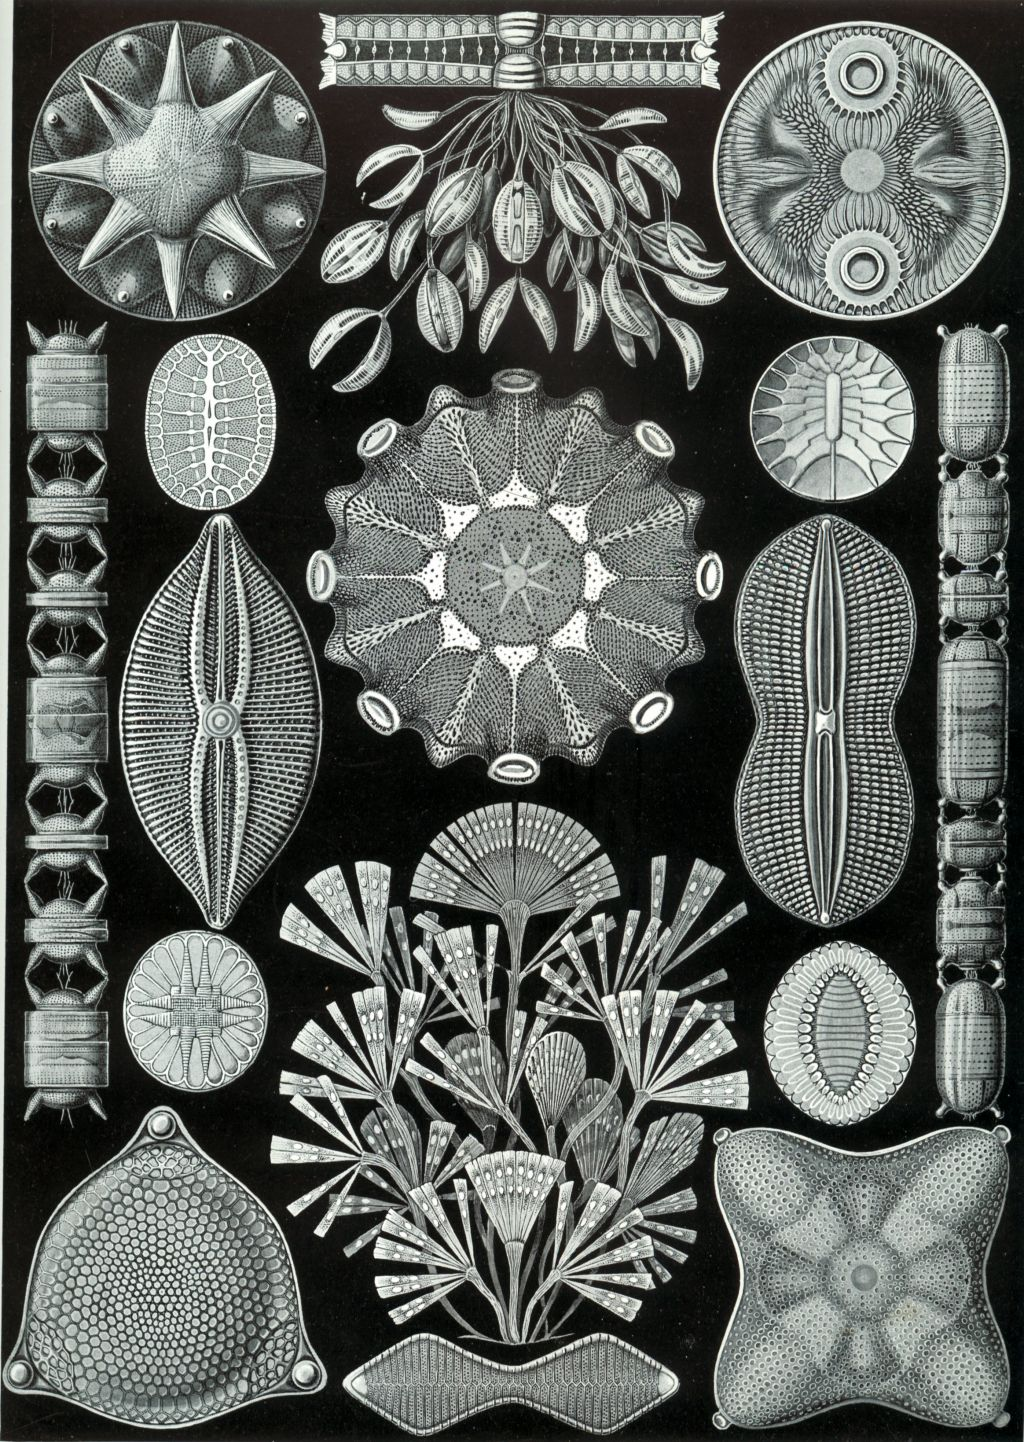 The 84th plate from Ernst Haeckel's ''Kunstformen der Natur'' (1904), depicting diatoms (Diatomea).